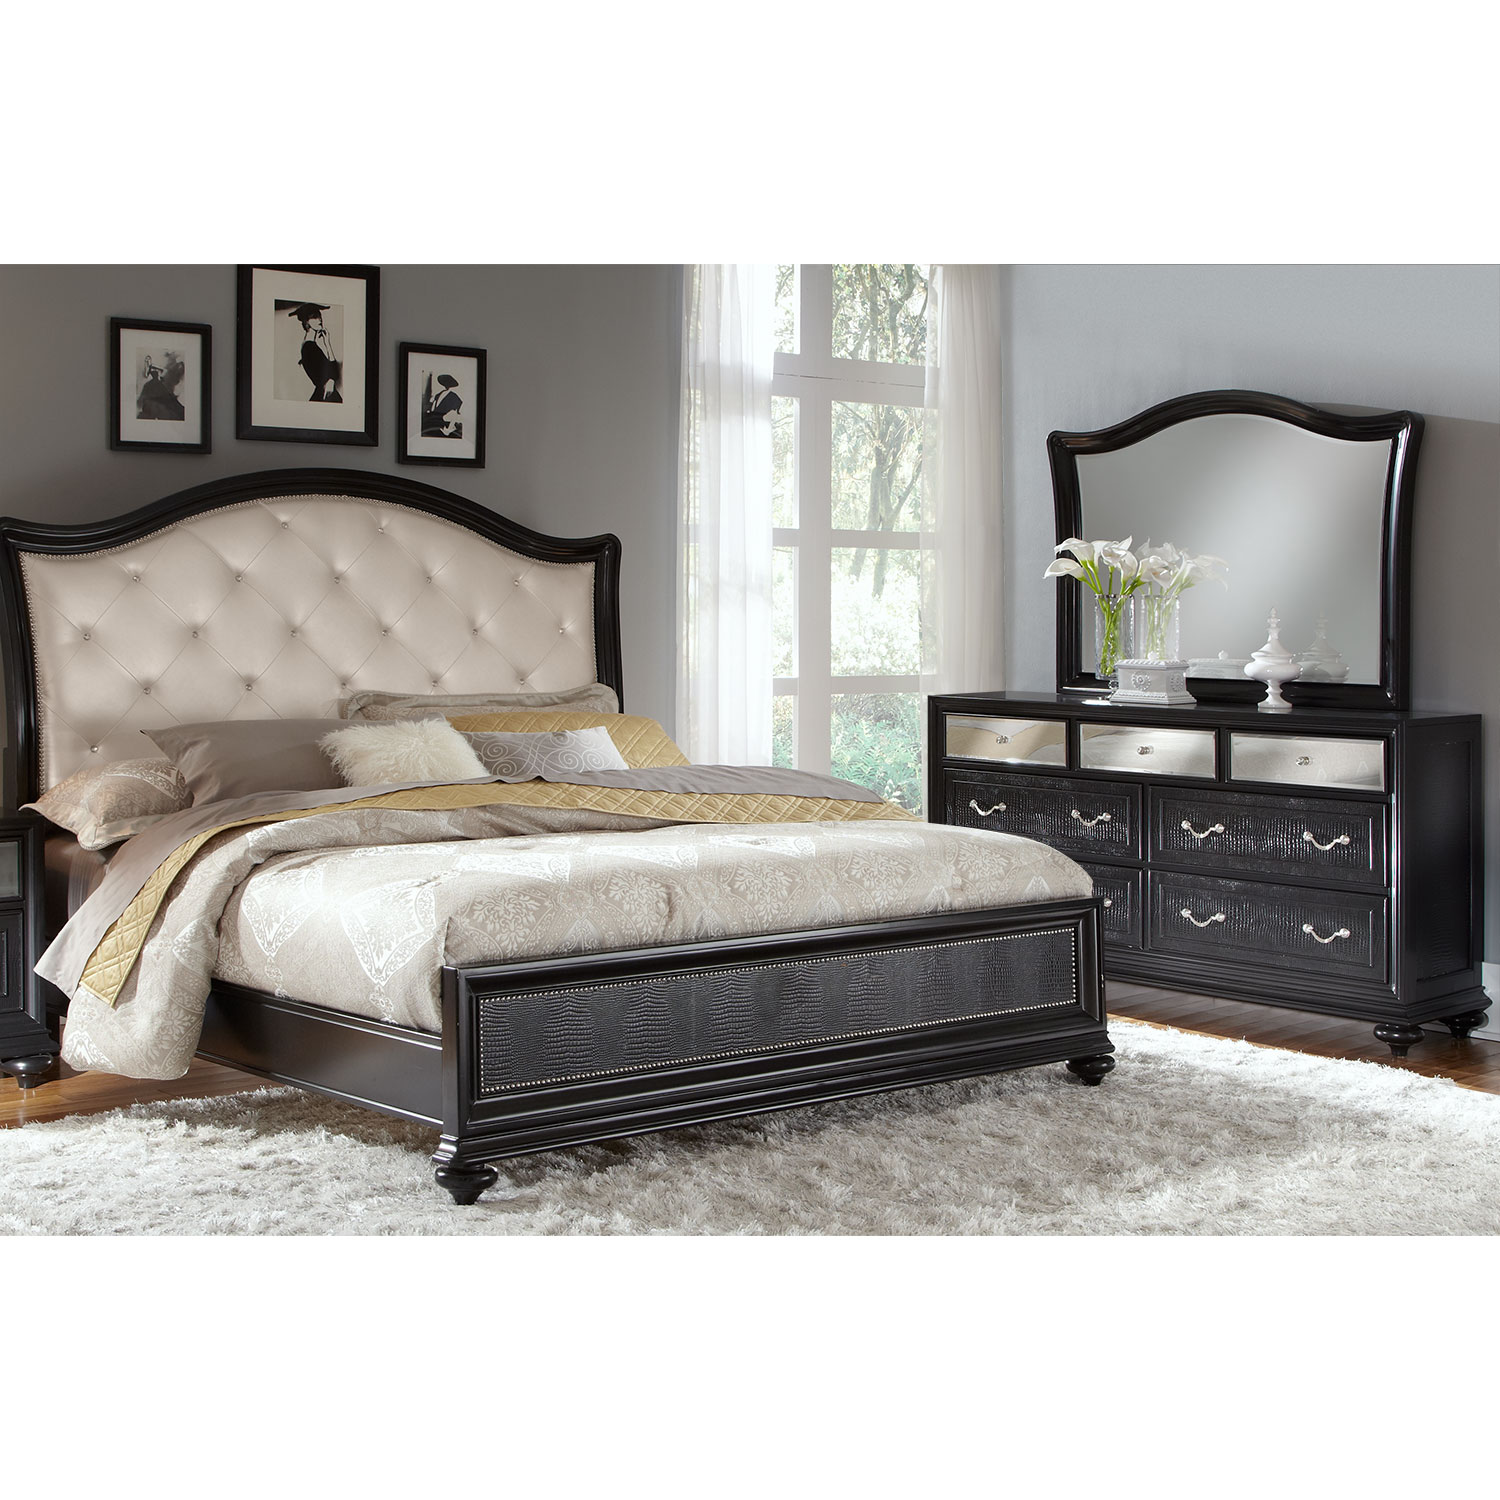 Value City Furniture Prices: Shop Bedroom Packages